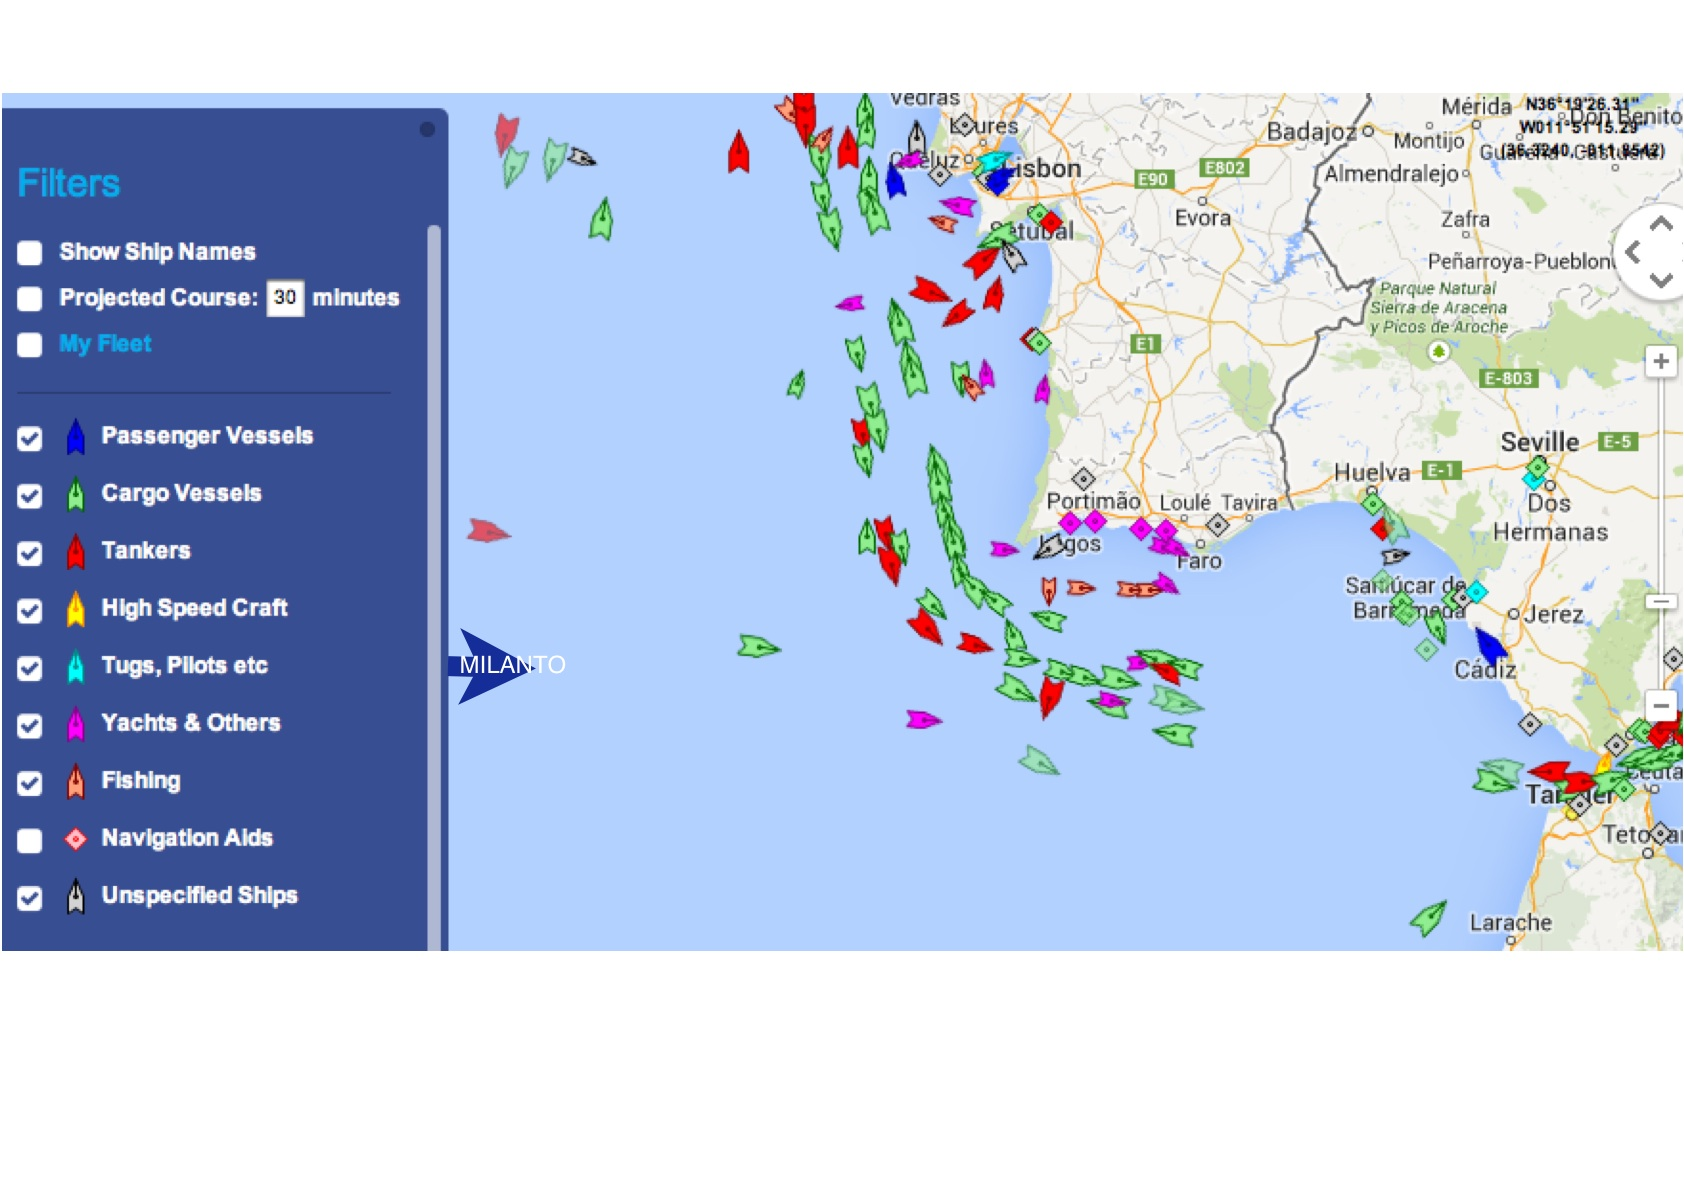 Blue arrow marking Milanto's position at 10:45 so by tomorrow will be in the shipping lanes